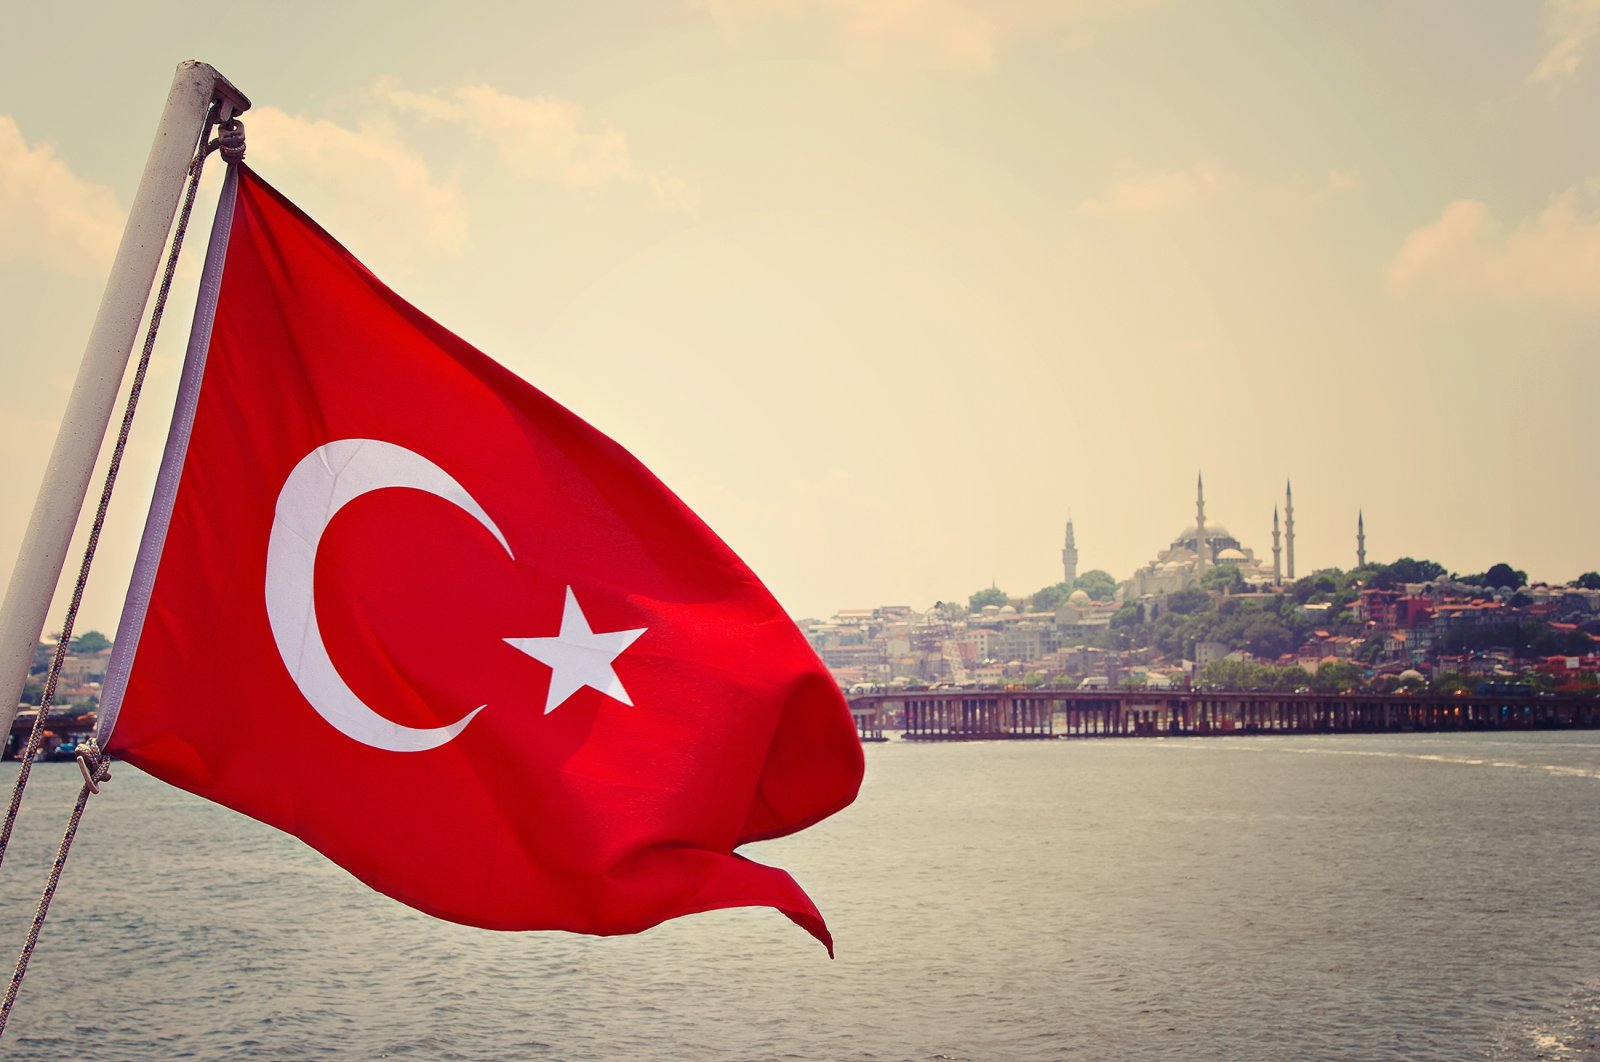 The Turkish flag flaps in the wind in front of the Bosporus and Sultanahmet Camii (Blue Mosque), Istanbul, Turkey. (Shutterstock Photo)